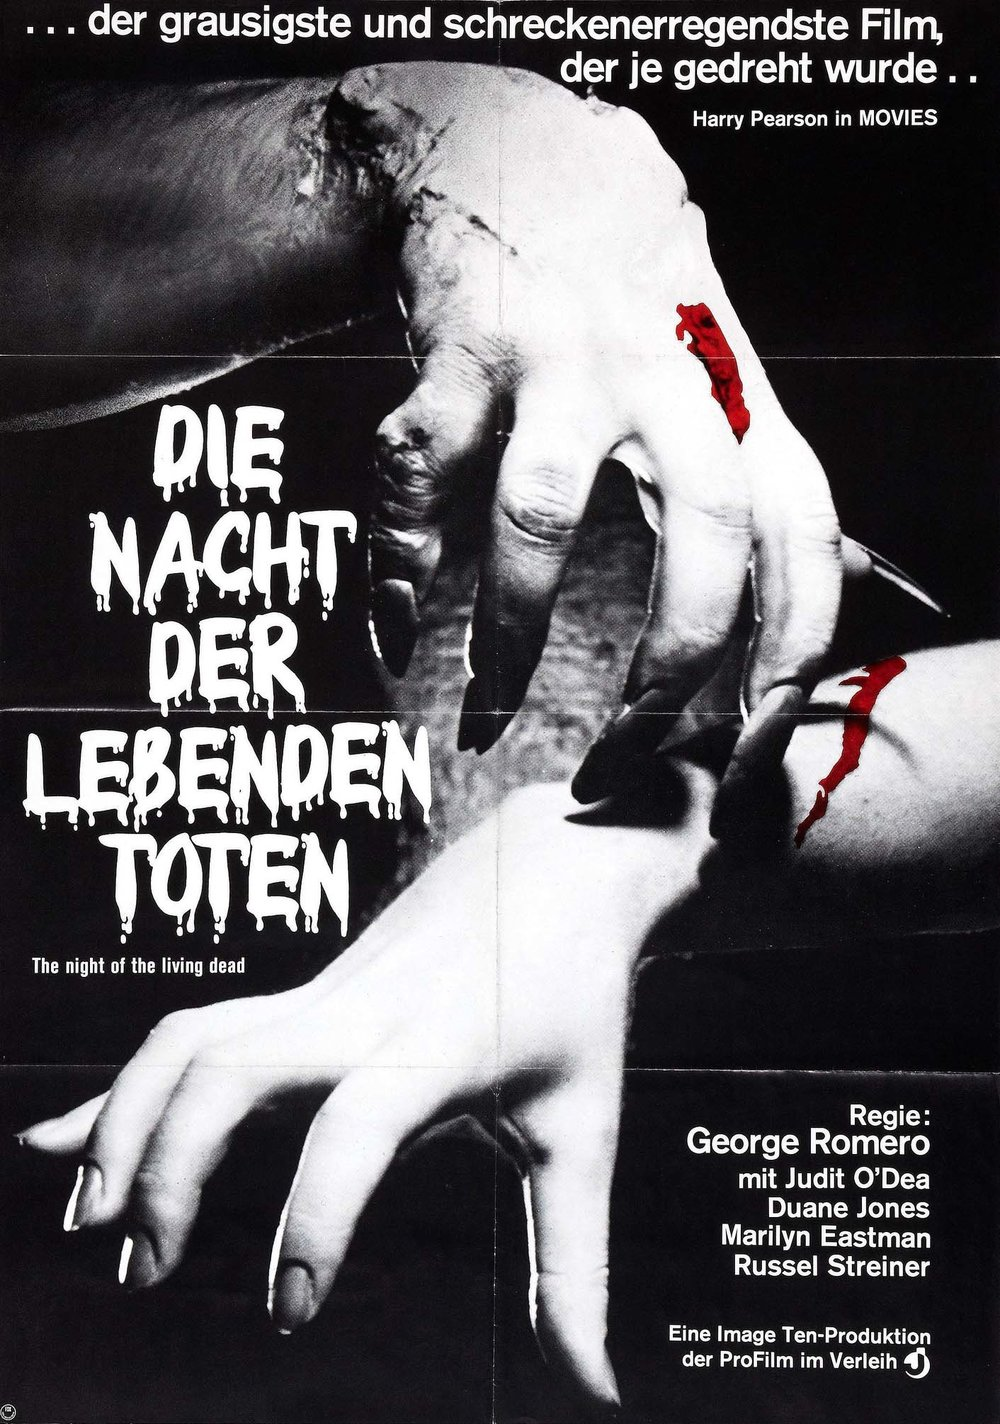 night_of_living_dead_1968_german_poster_blackandwhite.jpg